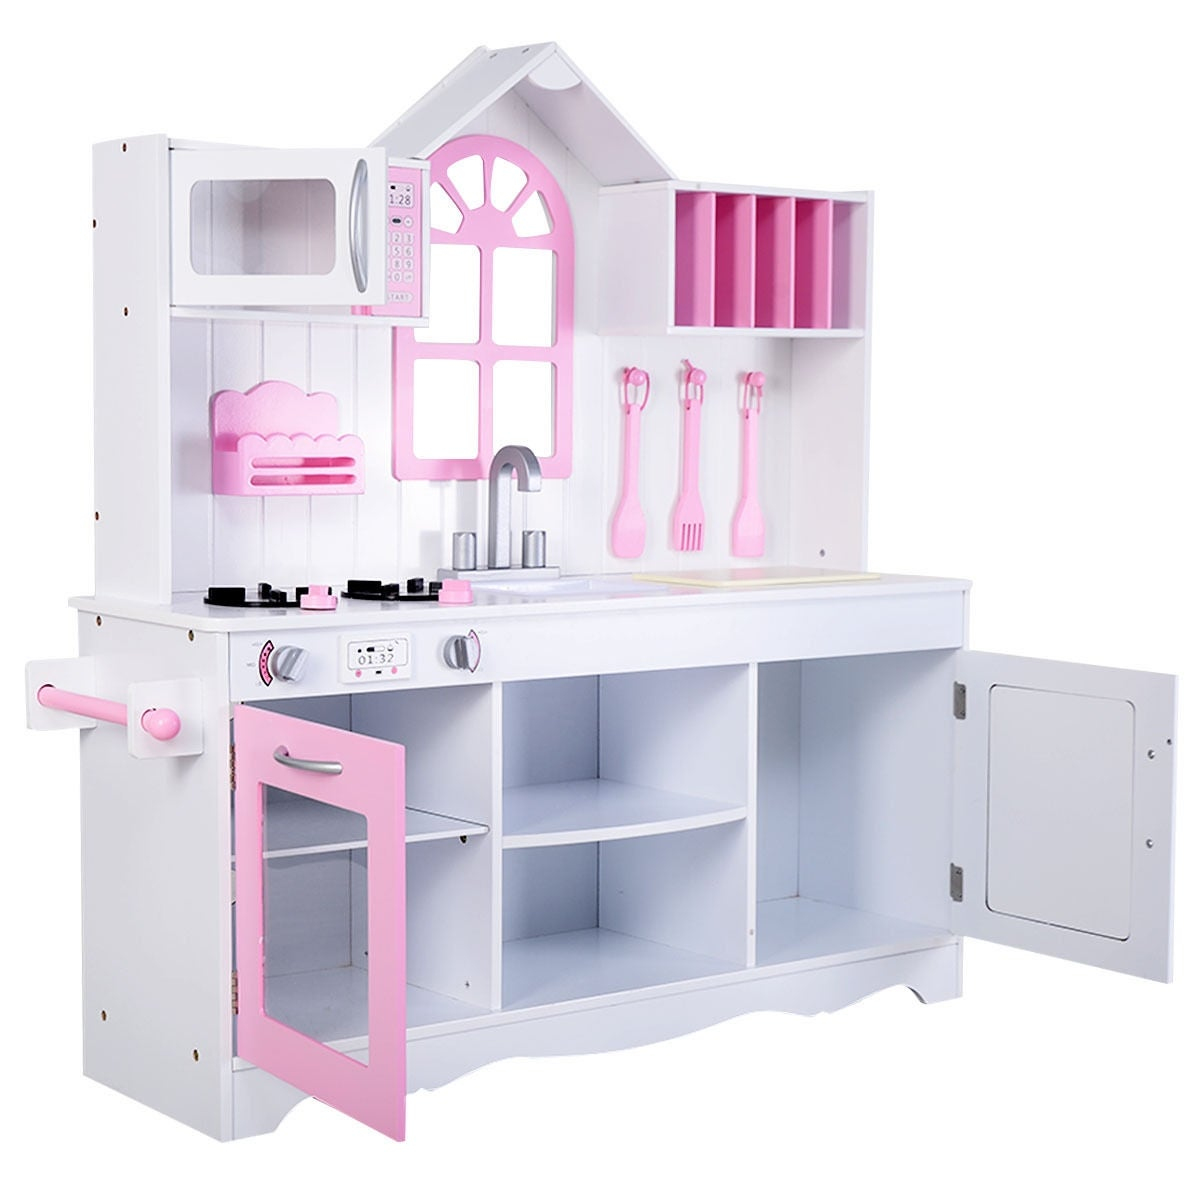 89350831e2e0 Shop Costway Kids Wood Kitchen Toy Cooking Pretend Play Set Toddler Wooden  Playset - Pink - On Sale - Free Shipping Today - Overstock - 17259388